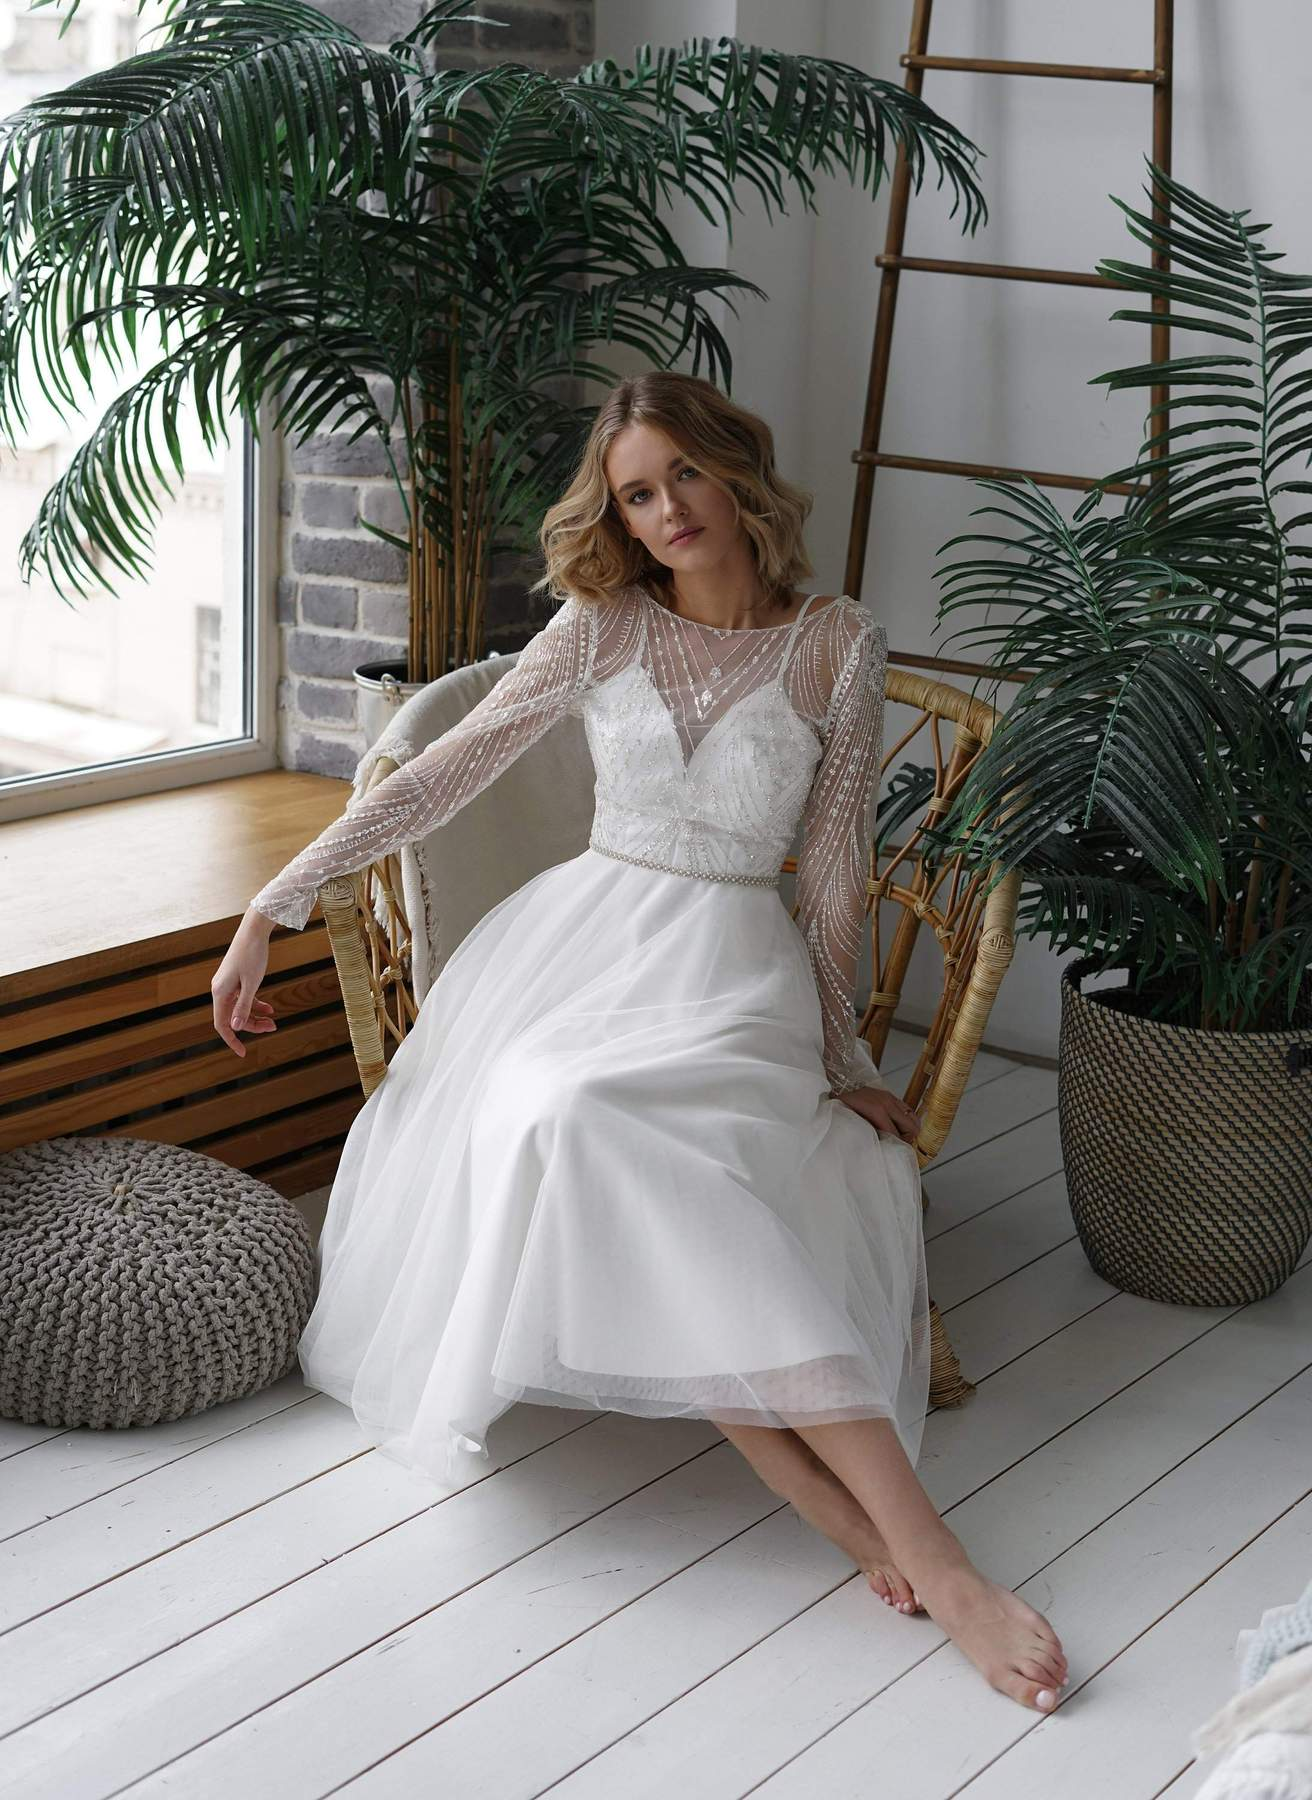 model in a short wedding dress with sleeves